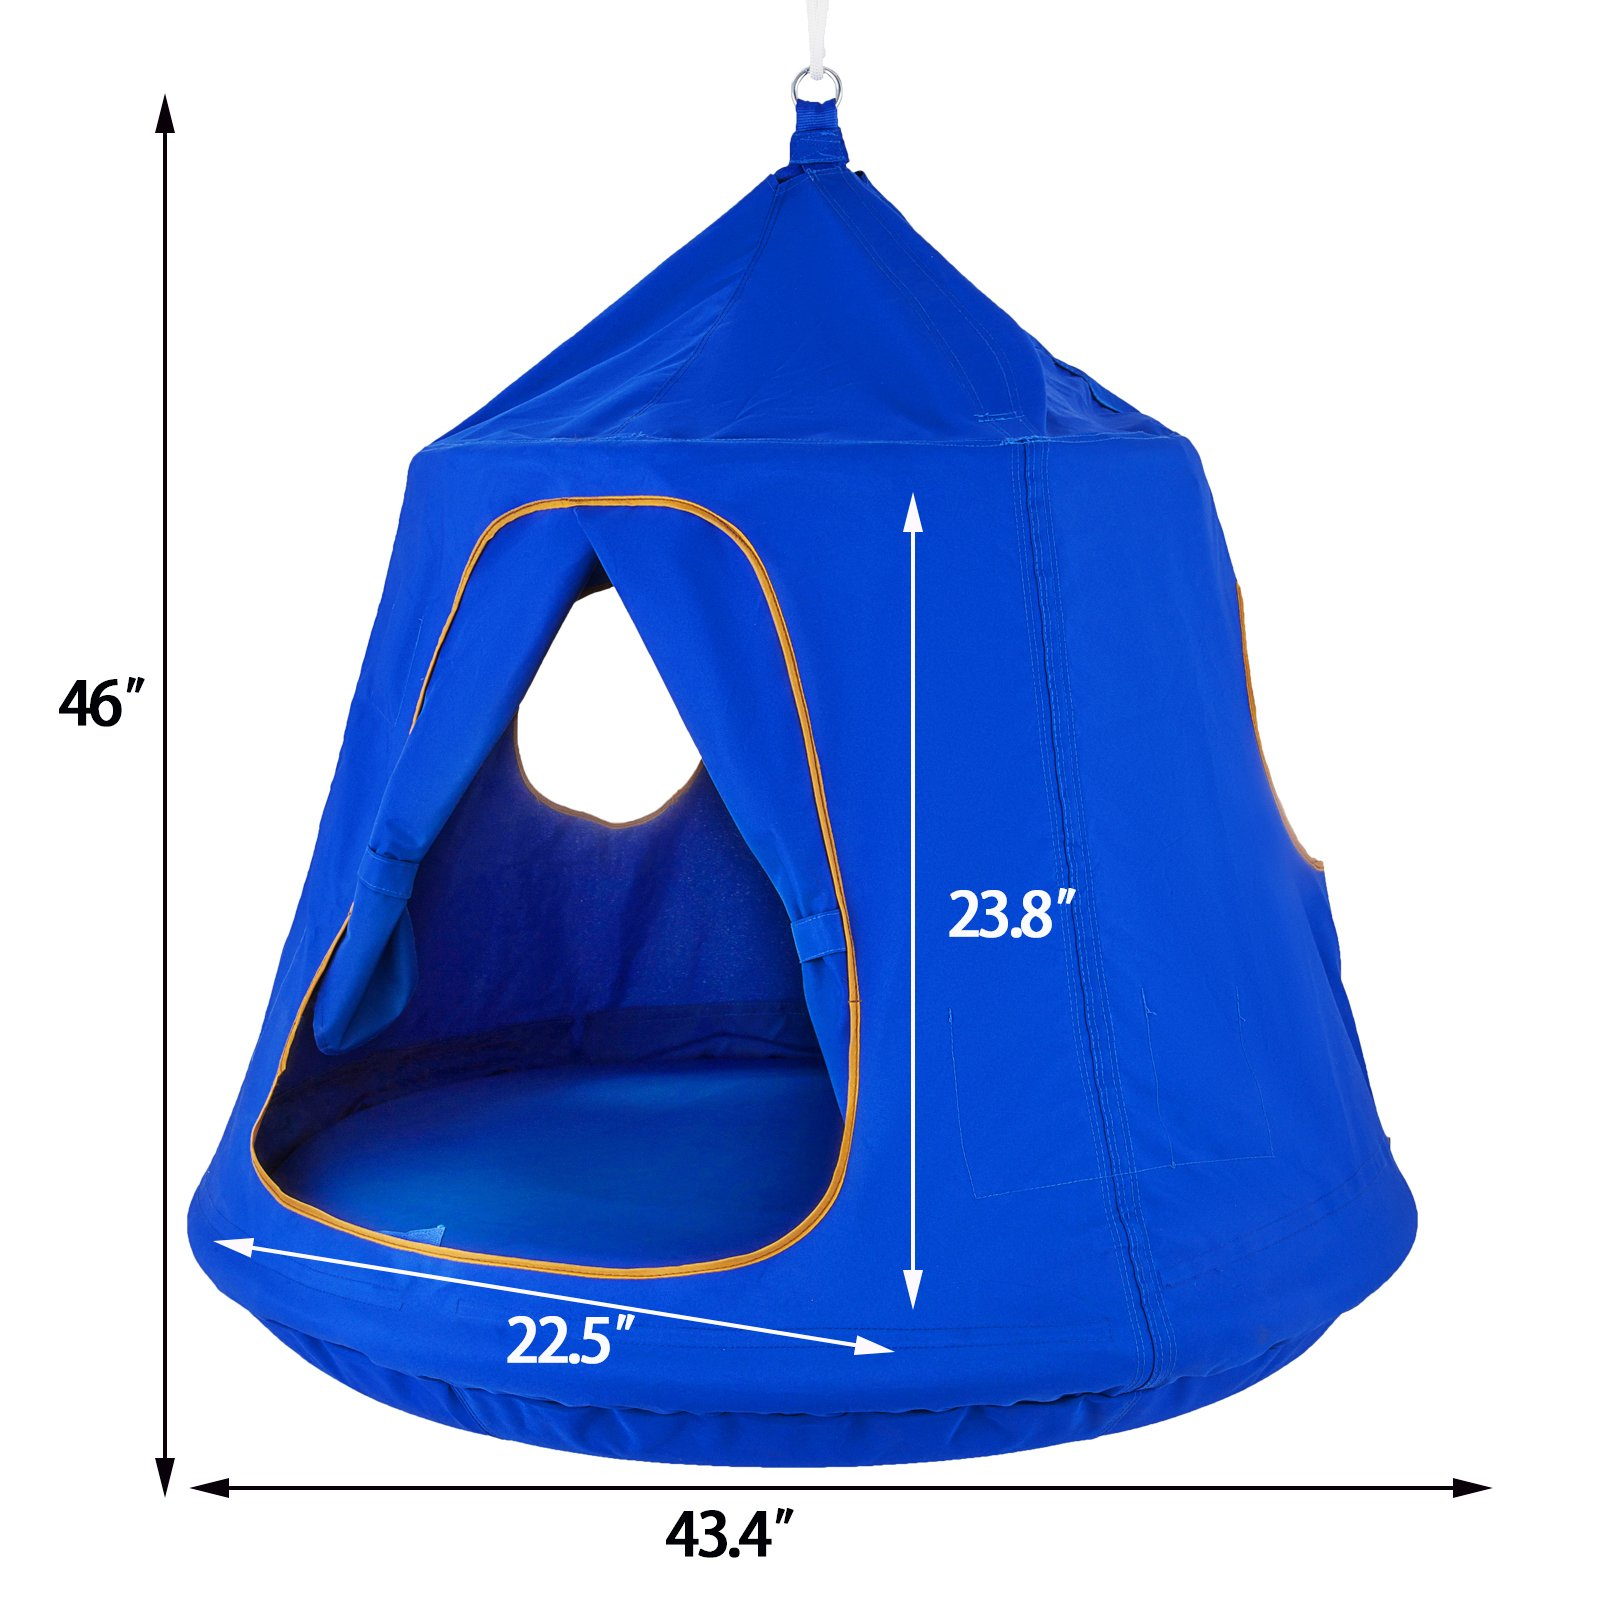 Mophorn Hanging Tree Tent 45 diam x 54 H Hanging Tent Swing Tent Waterproof Hanging Tree&Ceiling Hammock Tent Green Kids Outdoor Tents Playhouses (Blue) by Mophorn (Image #3)